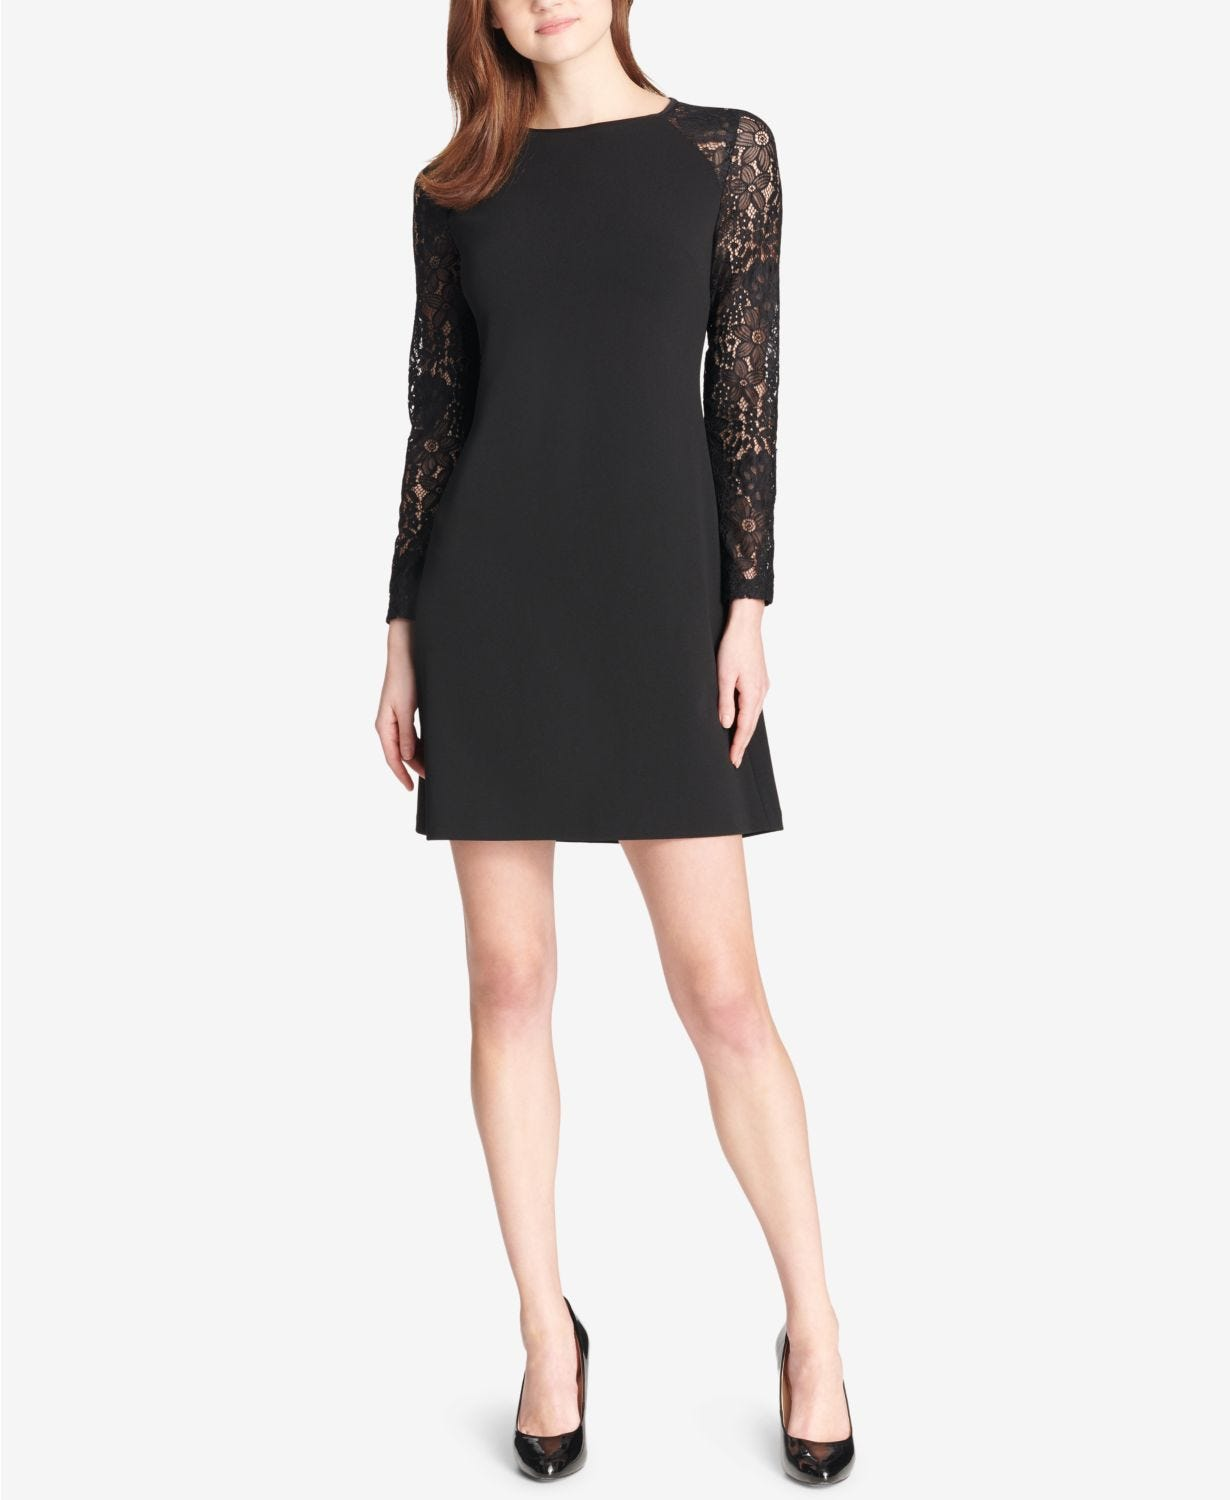 64859991 Best Macys Black Friday Deals On Womens Clothes & Shoes